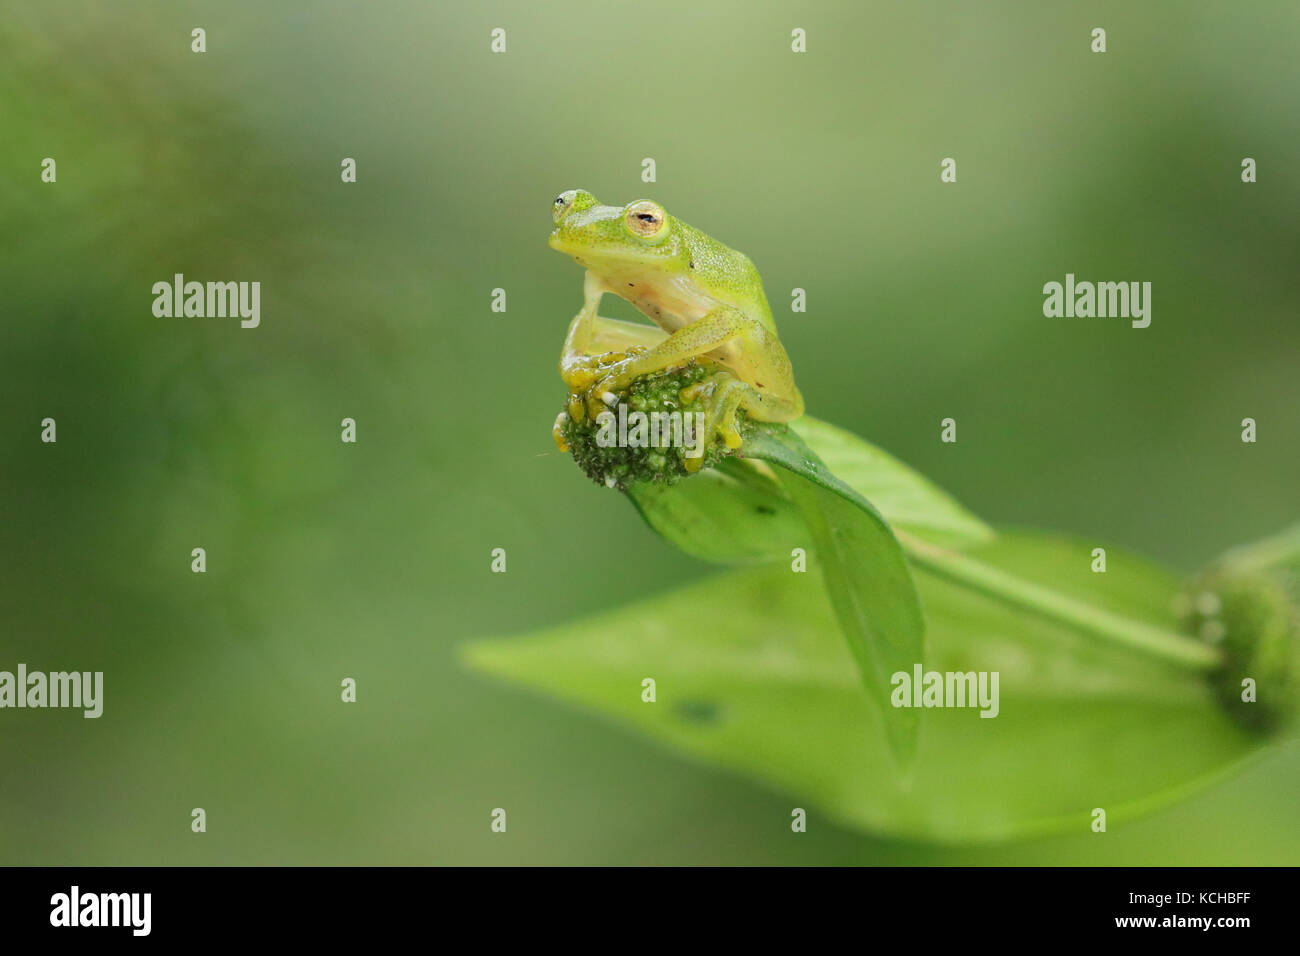 Glass Frog perched on a branch in Costa Rica - Stock Image